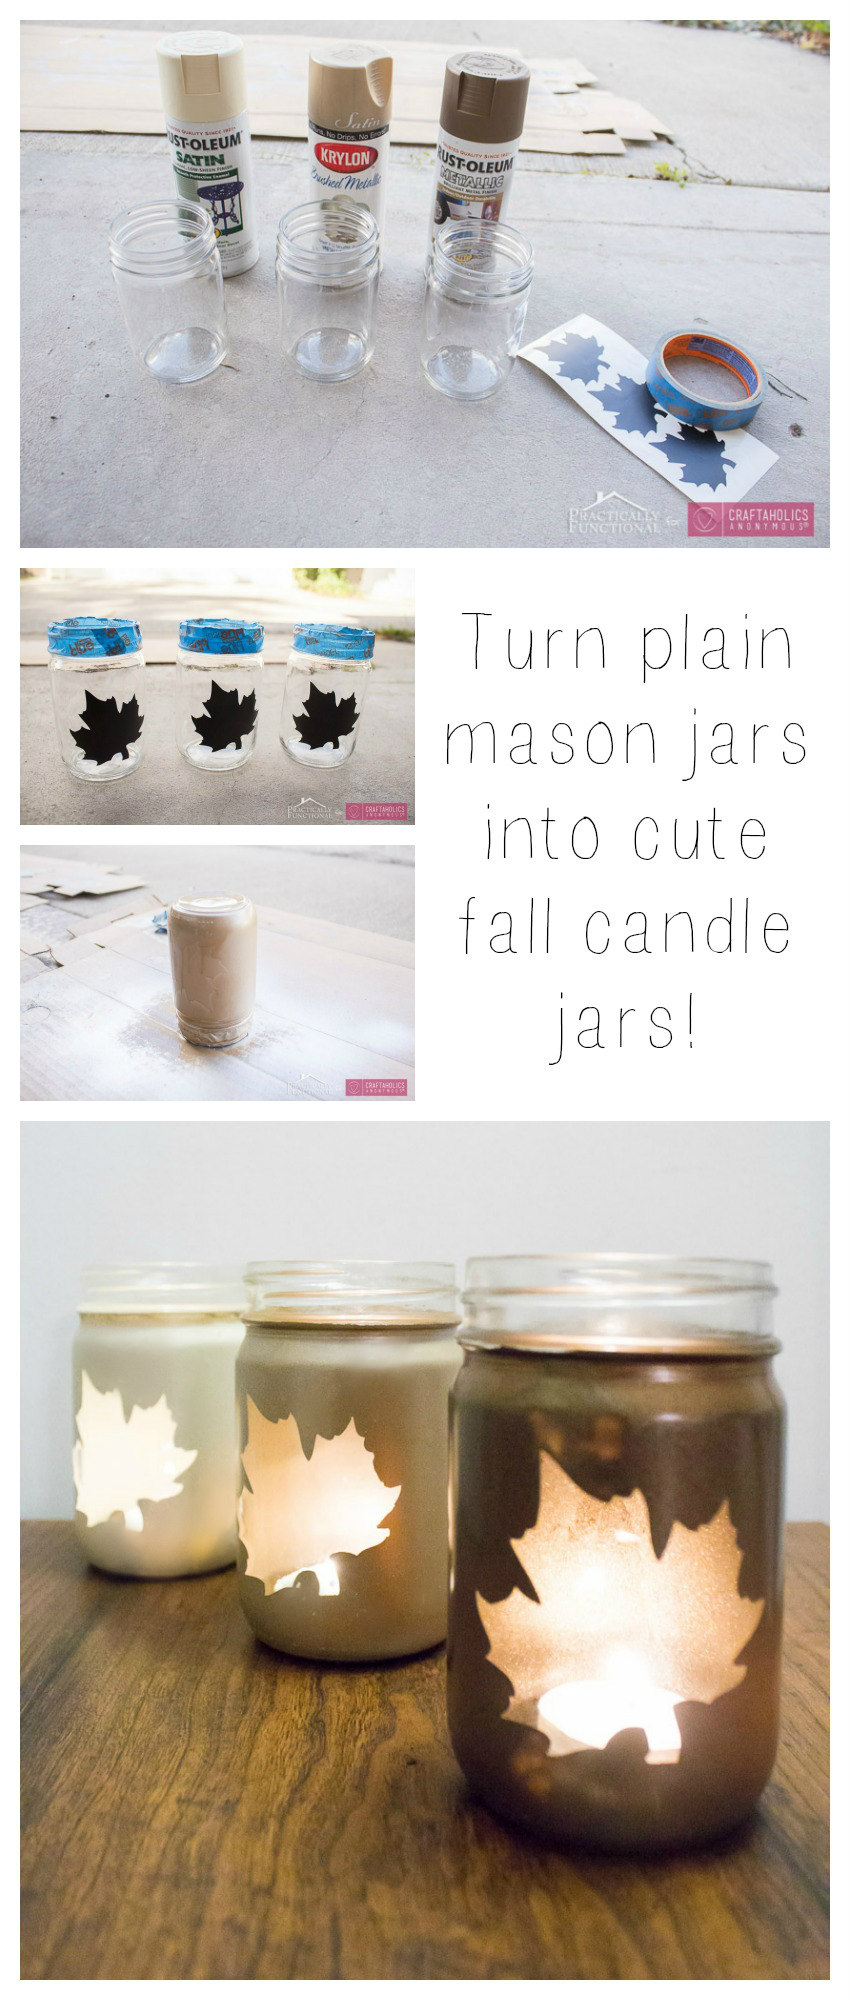 DIY Fall Leaf Mason Jar luminaries tutorial :: Simple ombre leaf luminaries add beautiful ambience to your fall decor!